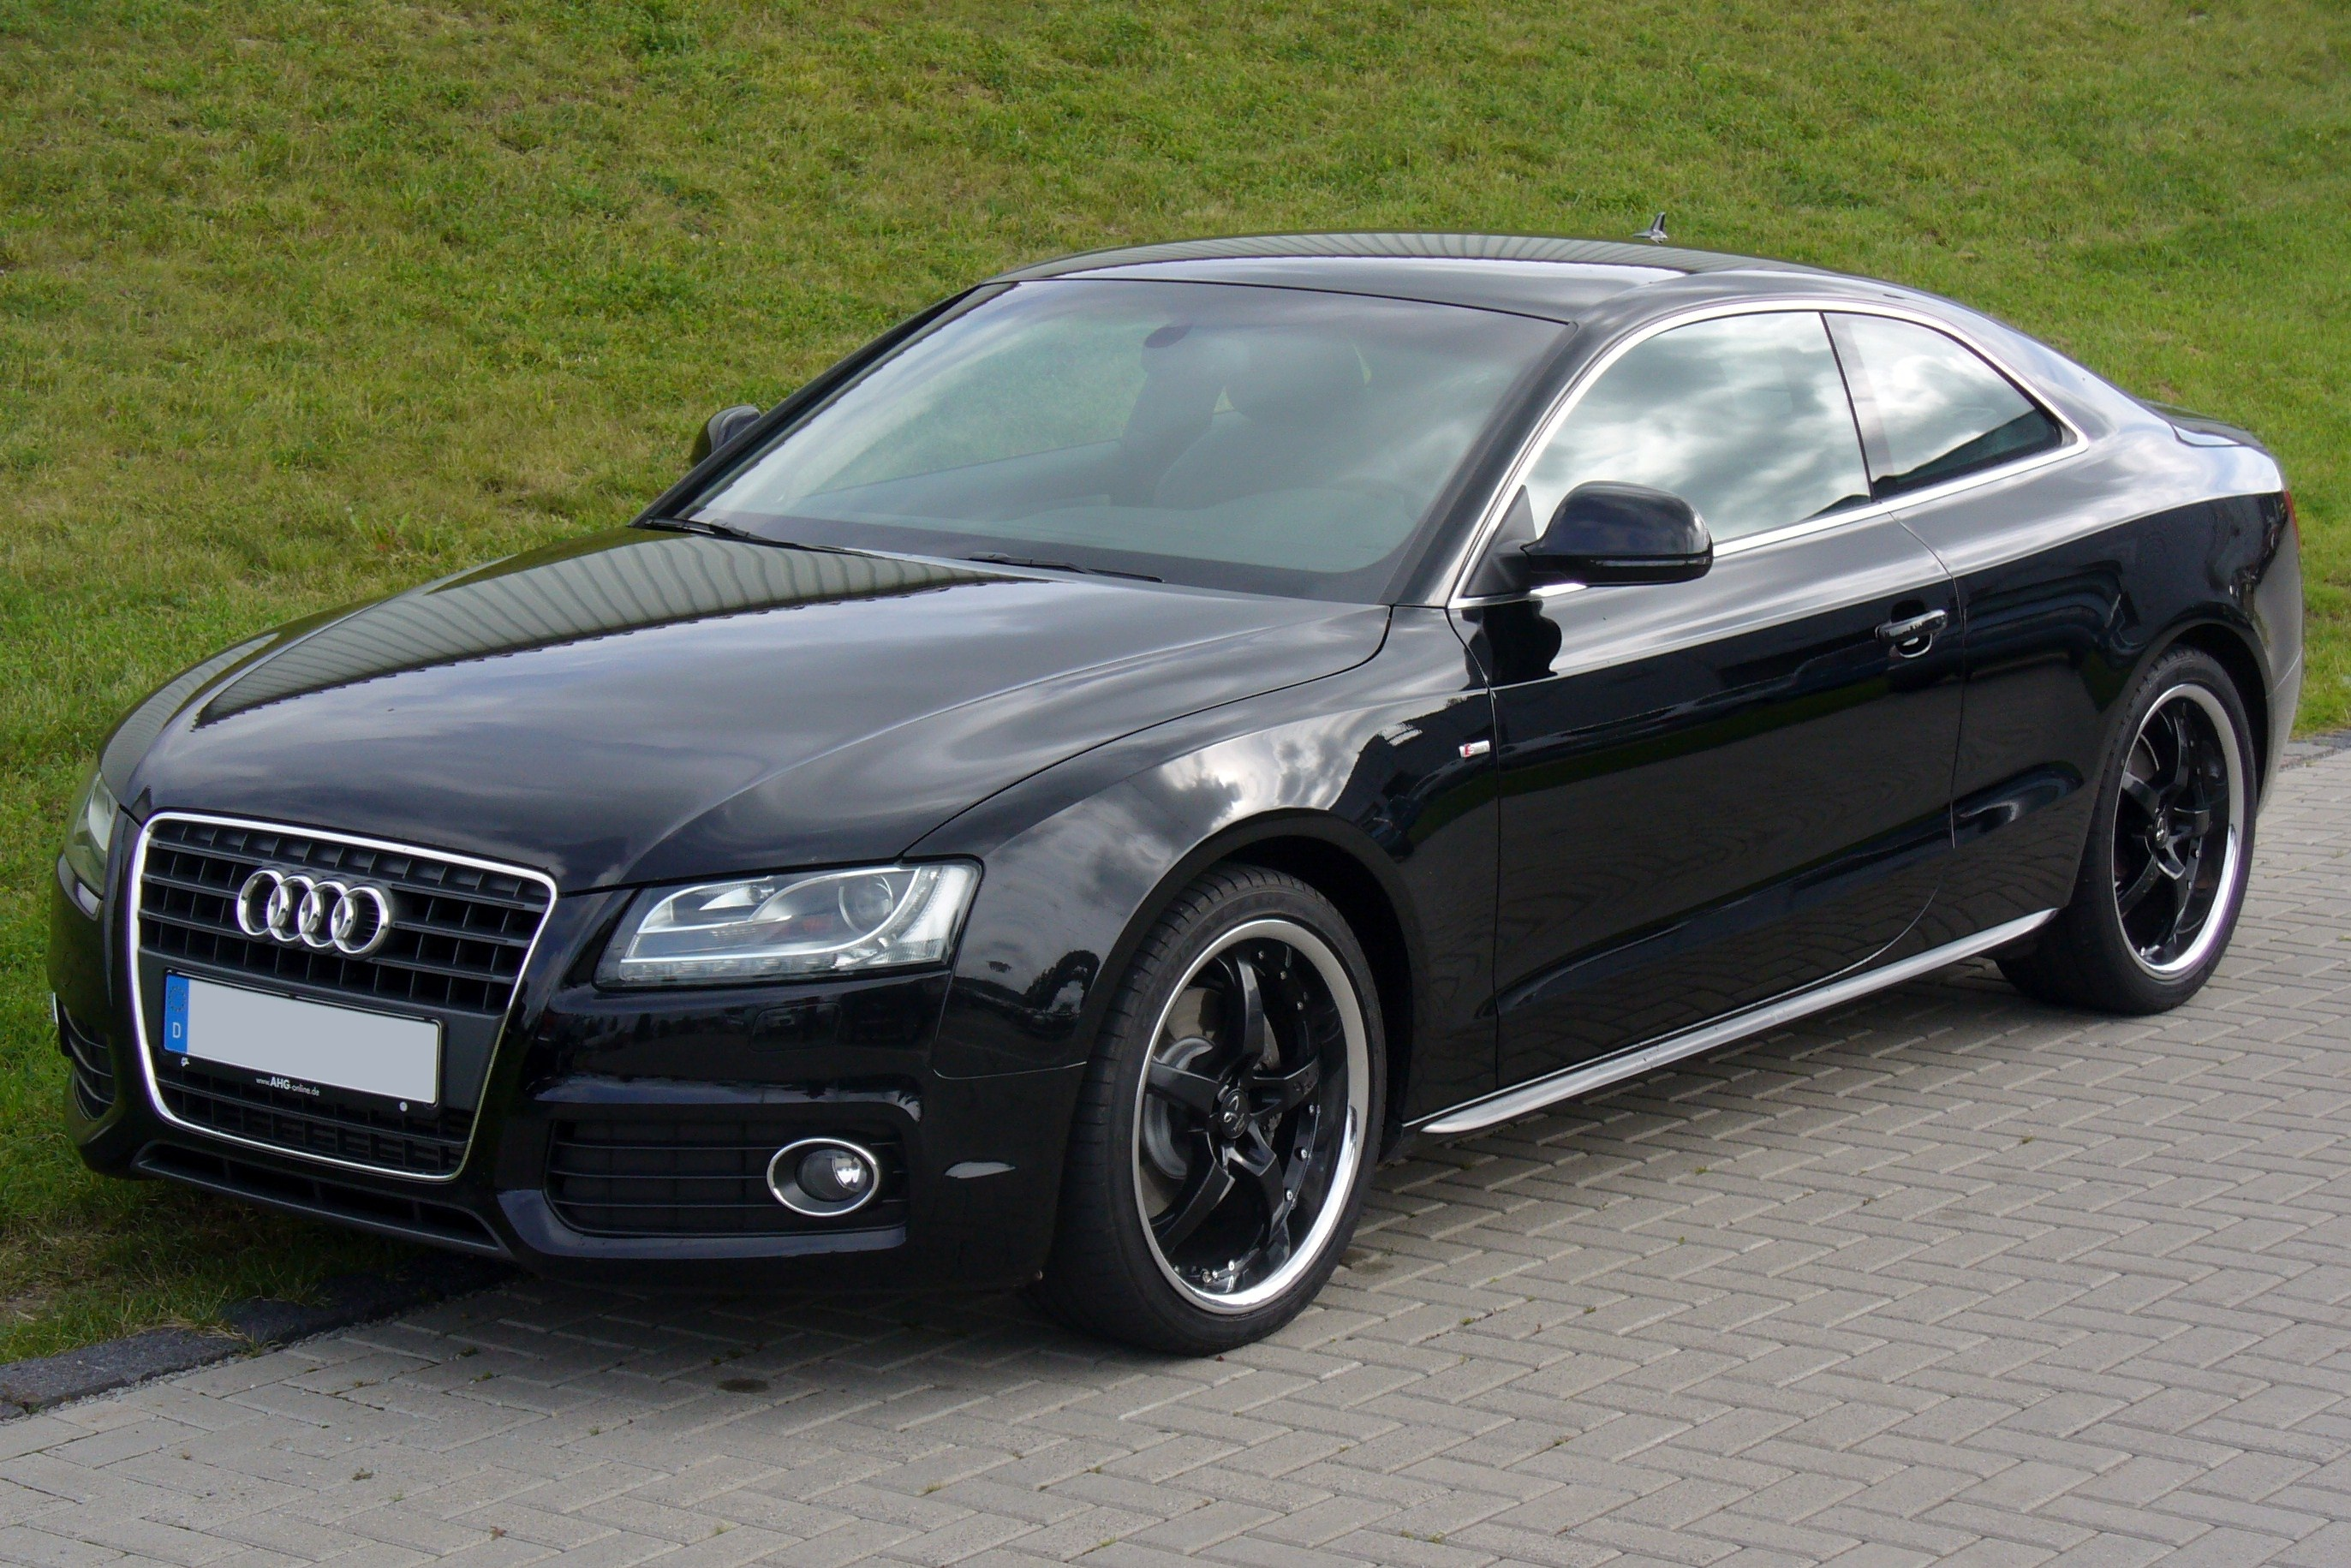 audi a5 2 7 tdi technical details history photos on better parts ltd. Black Bedroom Furniture Sets. Home Design Ideas